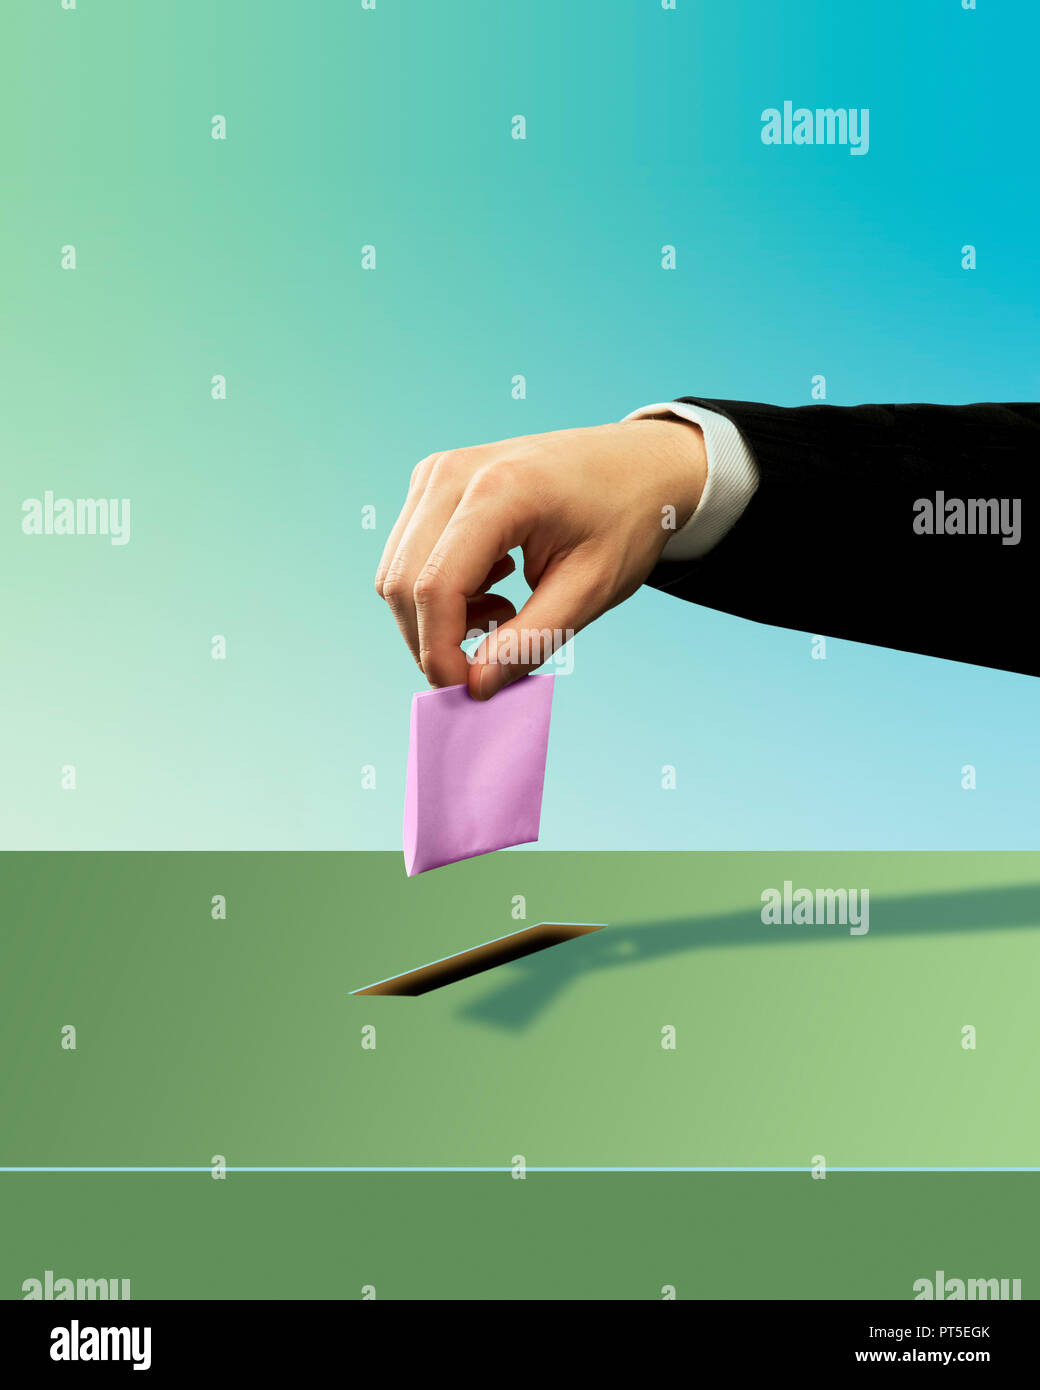 Concept A Man Hand dropping off a Pink ballot, Ballot Box, Voting, Vote, Election, Woman Candidate - Stock Image